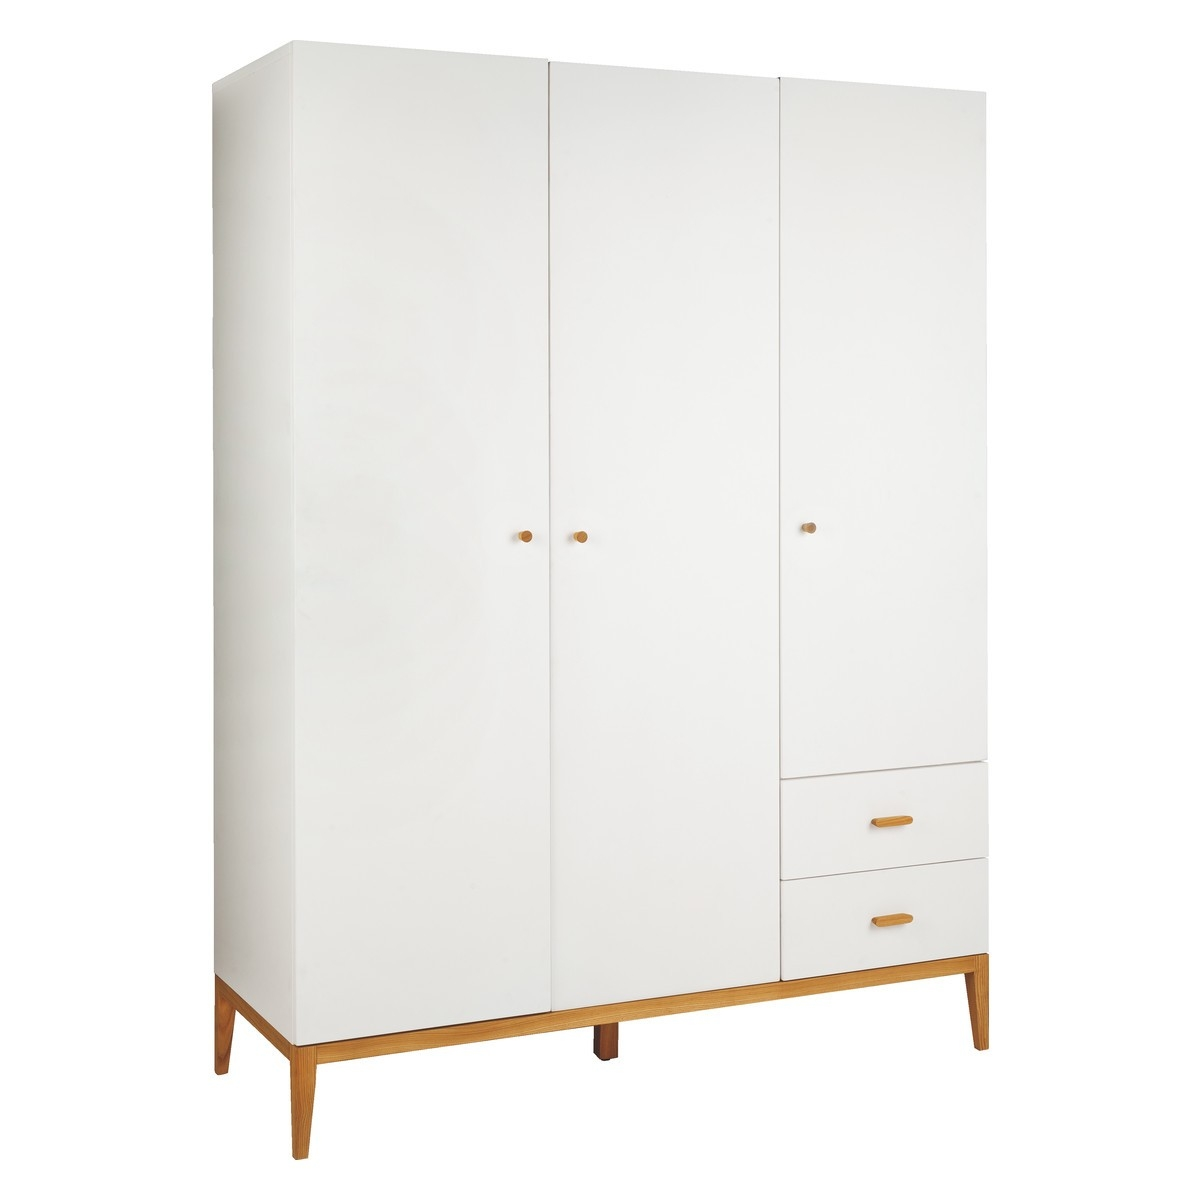 Tatsuma White And Ash 3 Door Wardrobe Buy Now At Habitat Uk Regarding 3 Door White Wardrobes (Image 21 of 25)